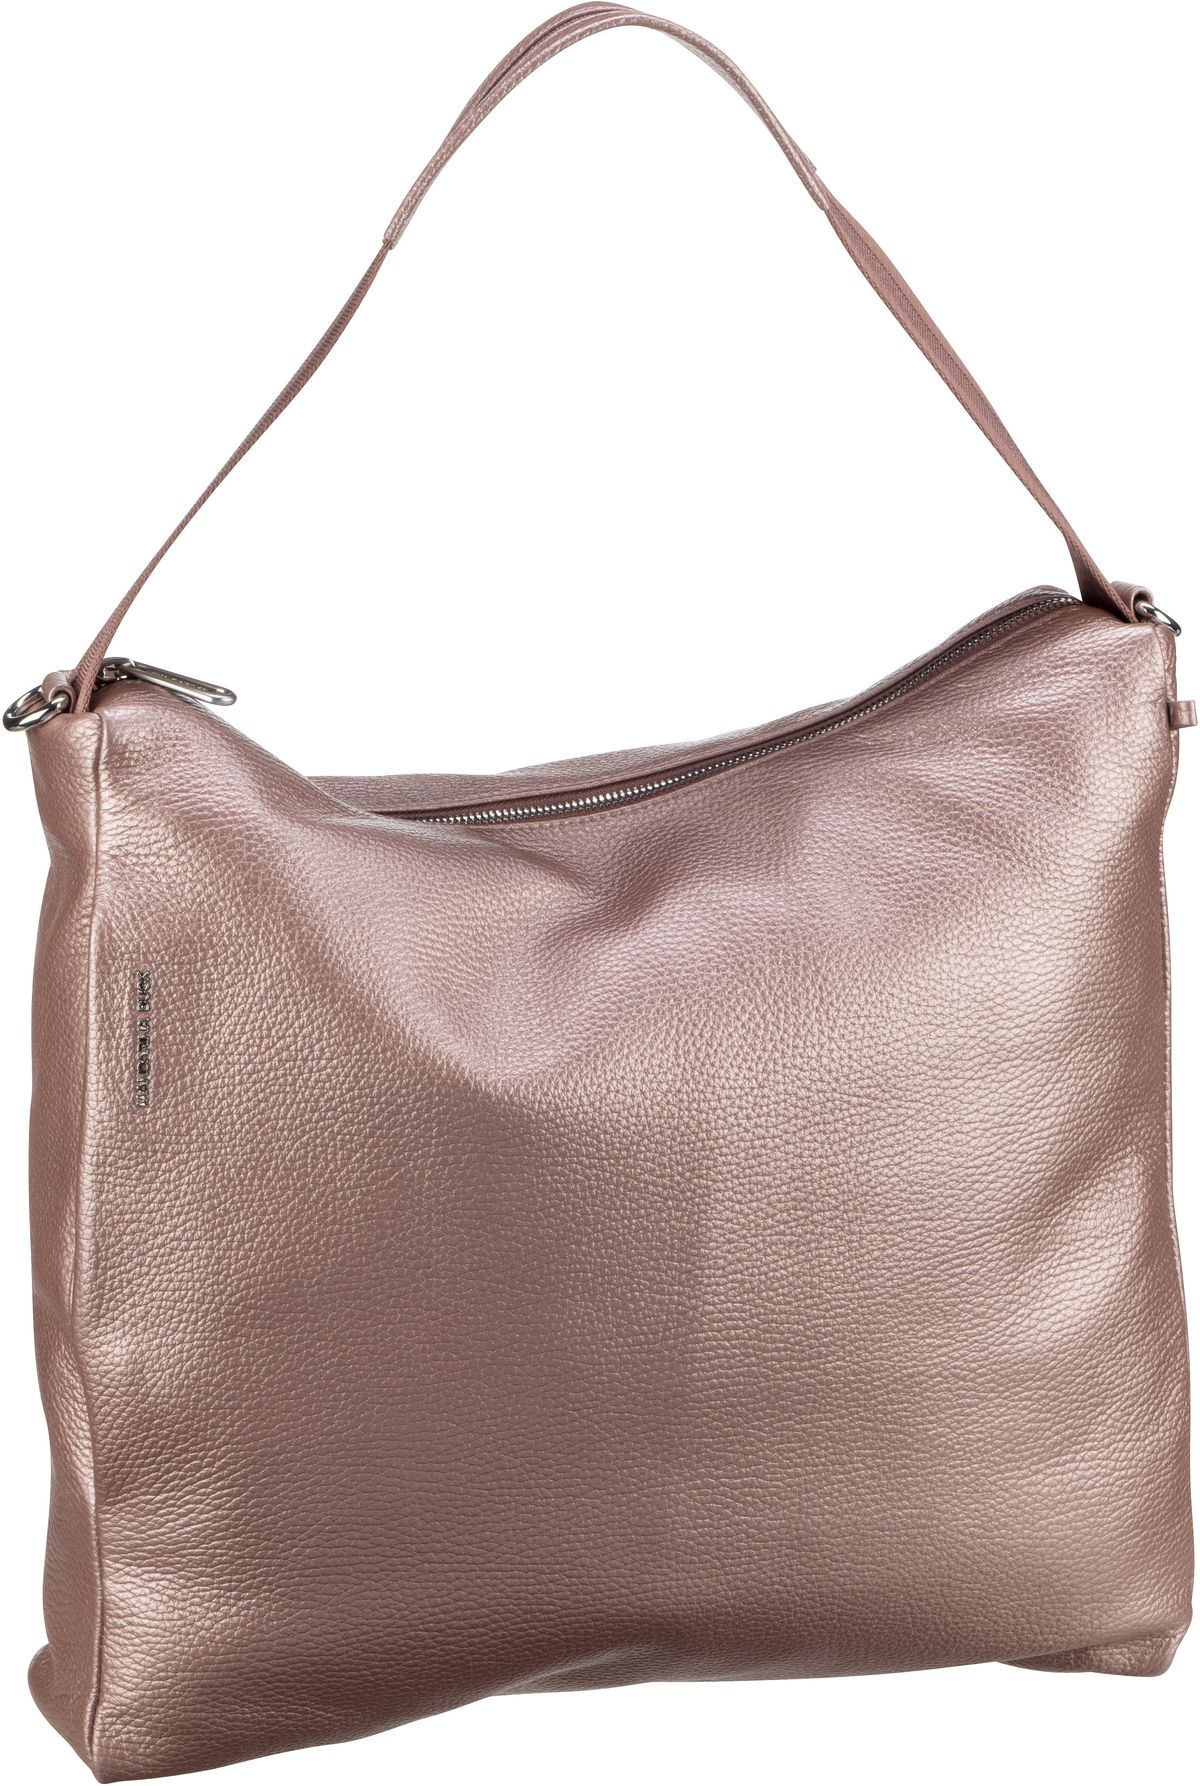 Handtasche Mellow Leather Lux Hobo ZLT95 Starfire